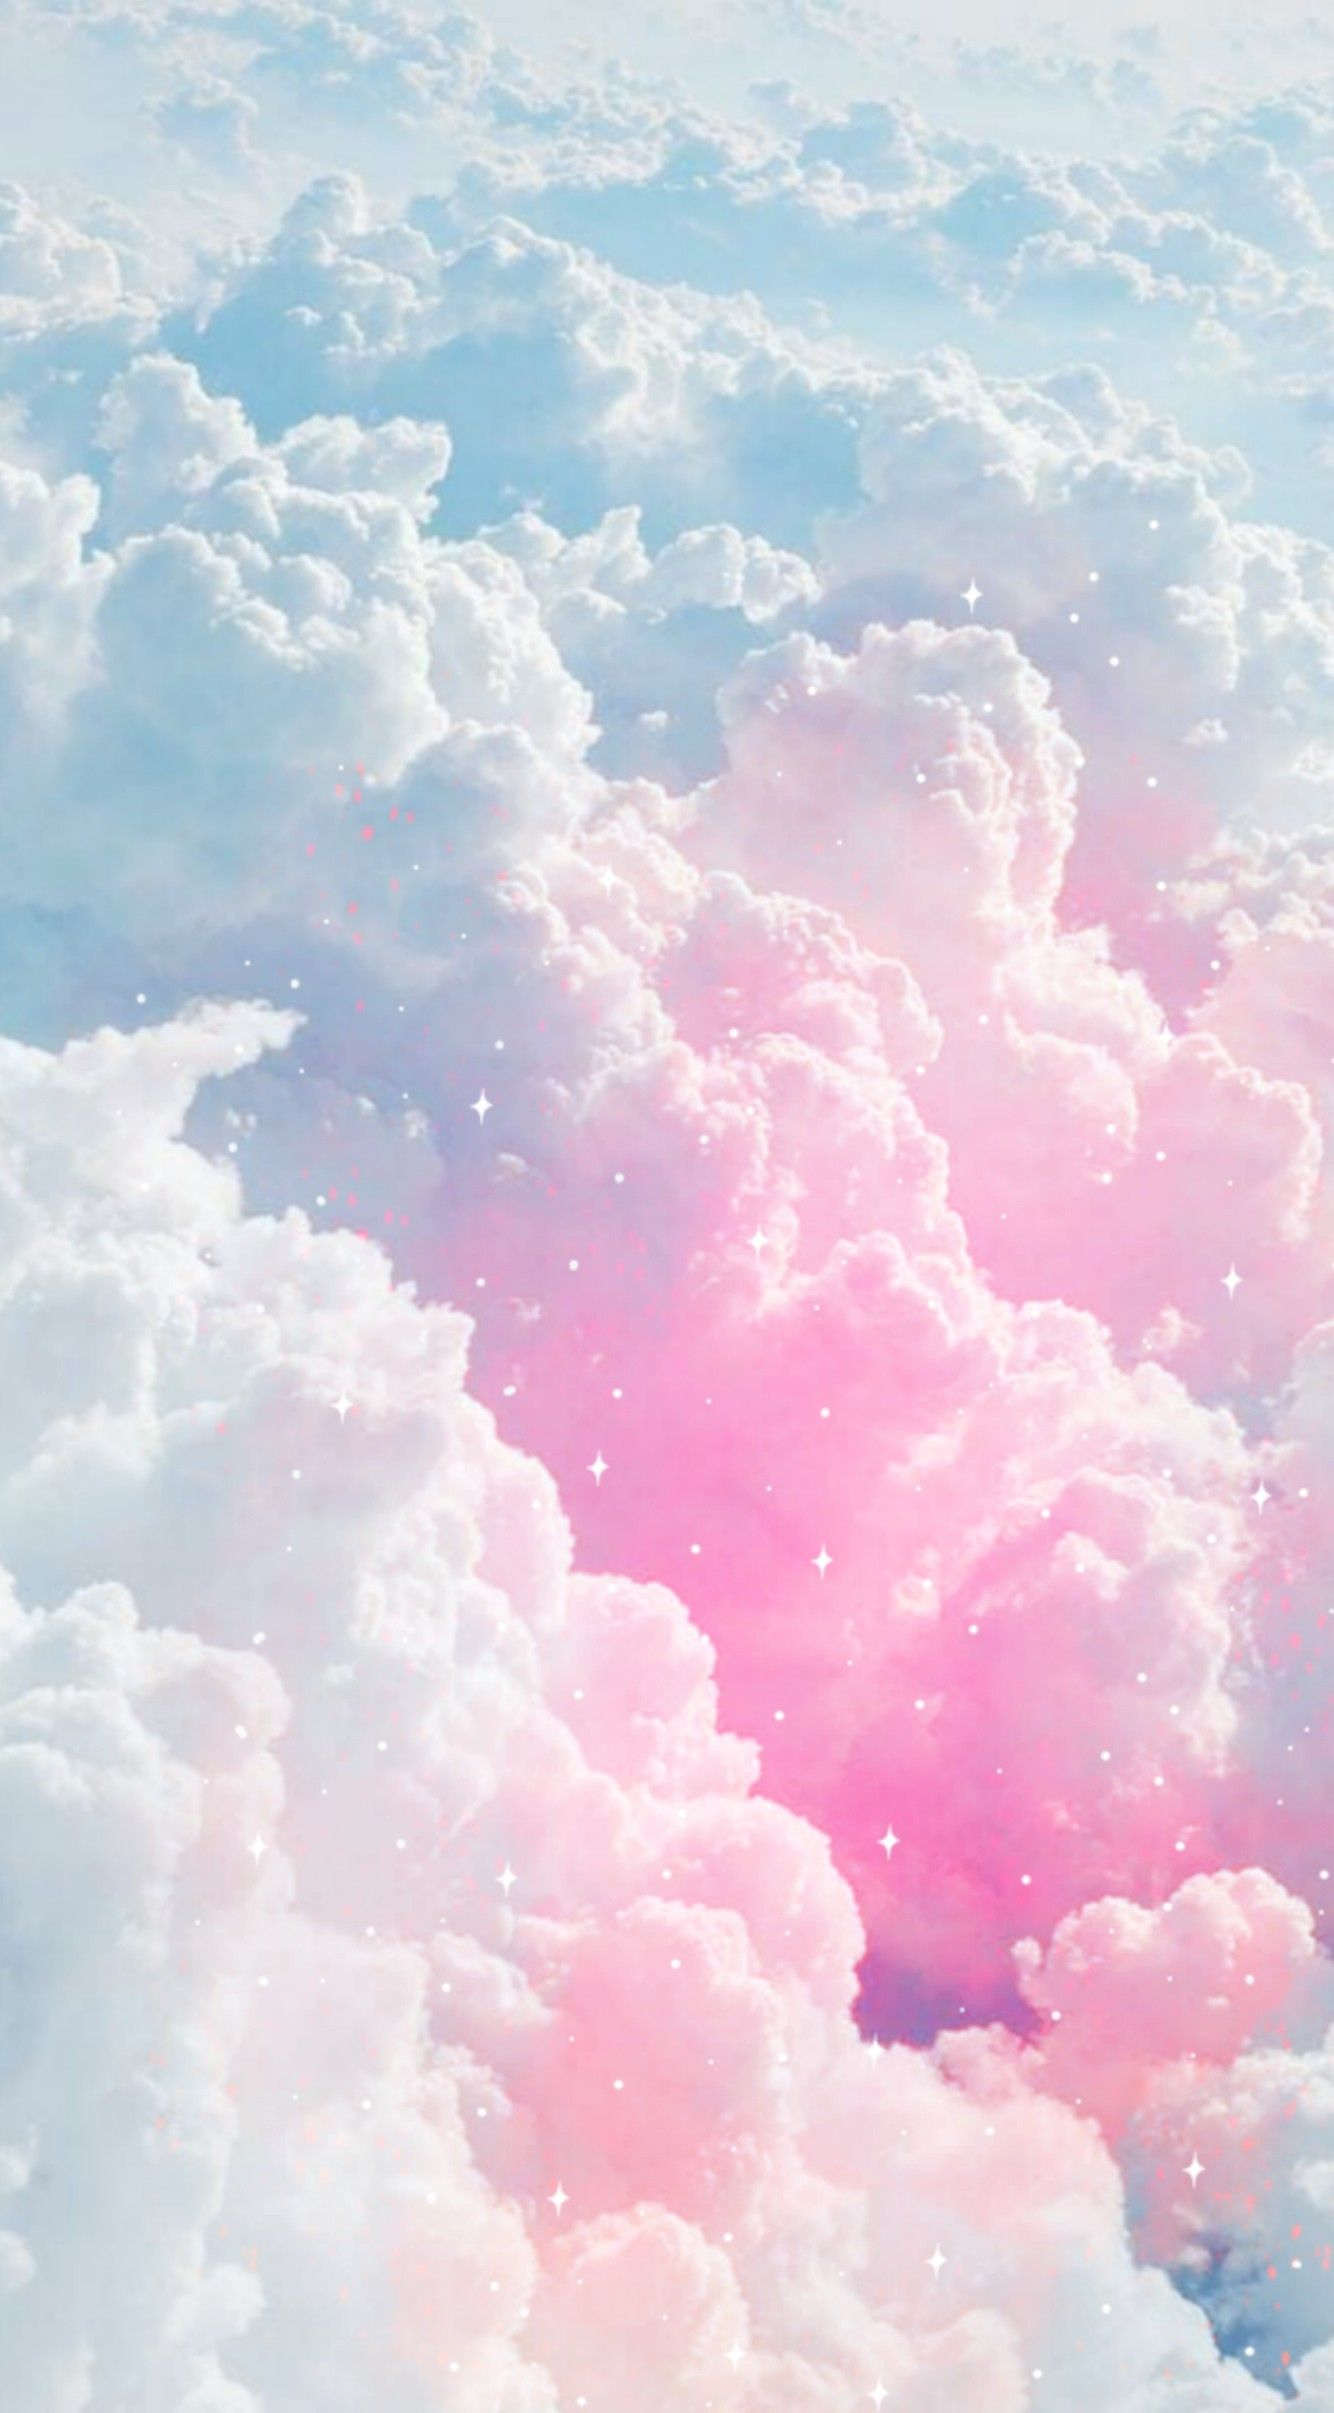 Aesthetic pink clouds wallpaper laptop